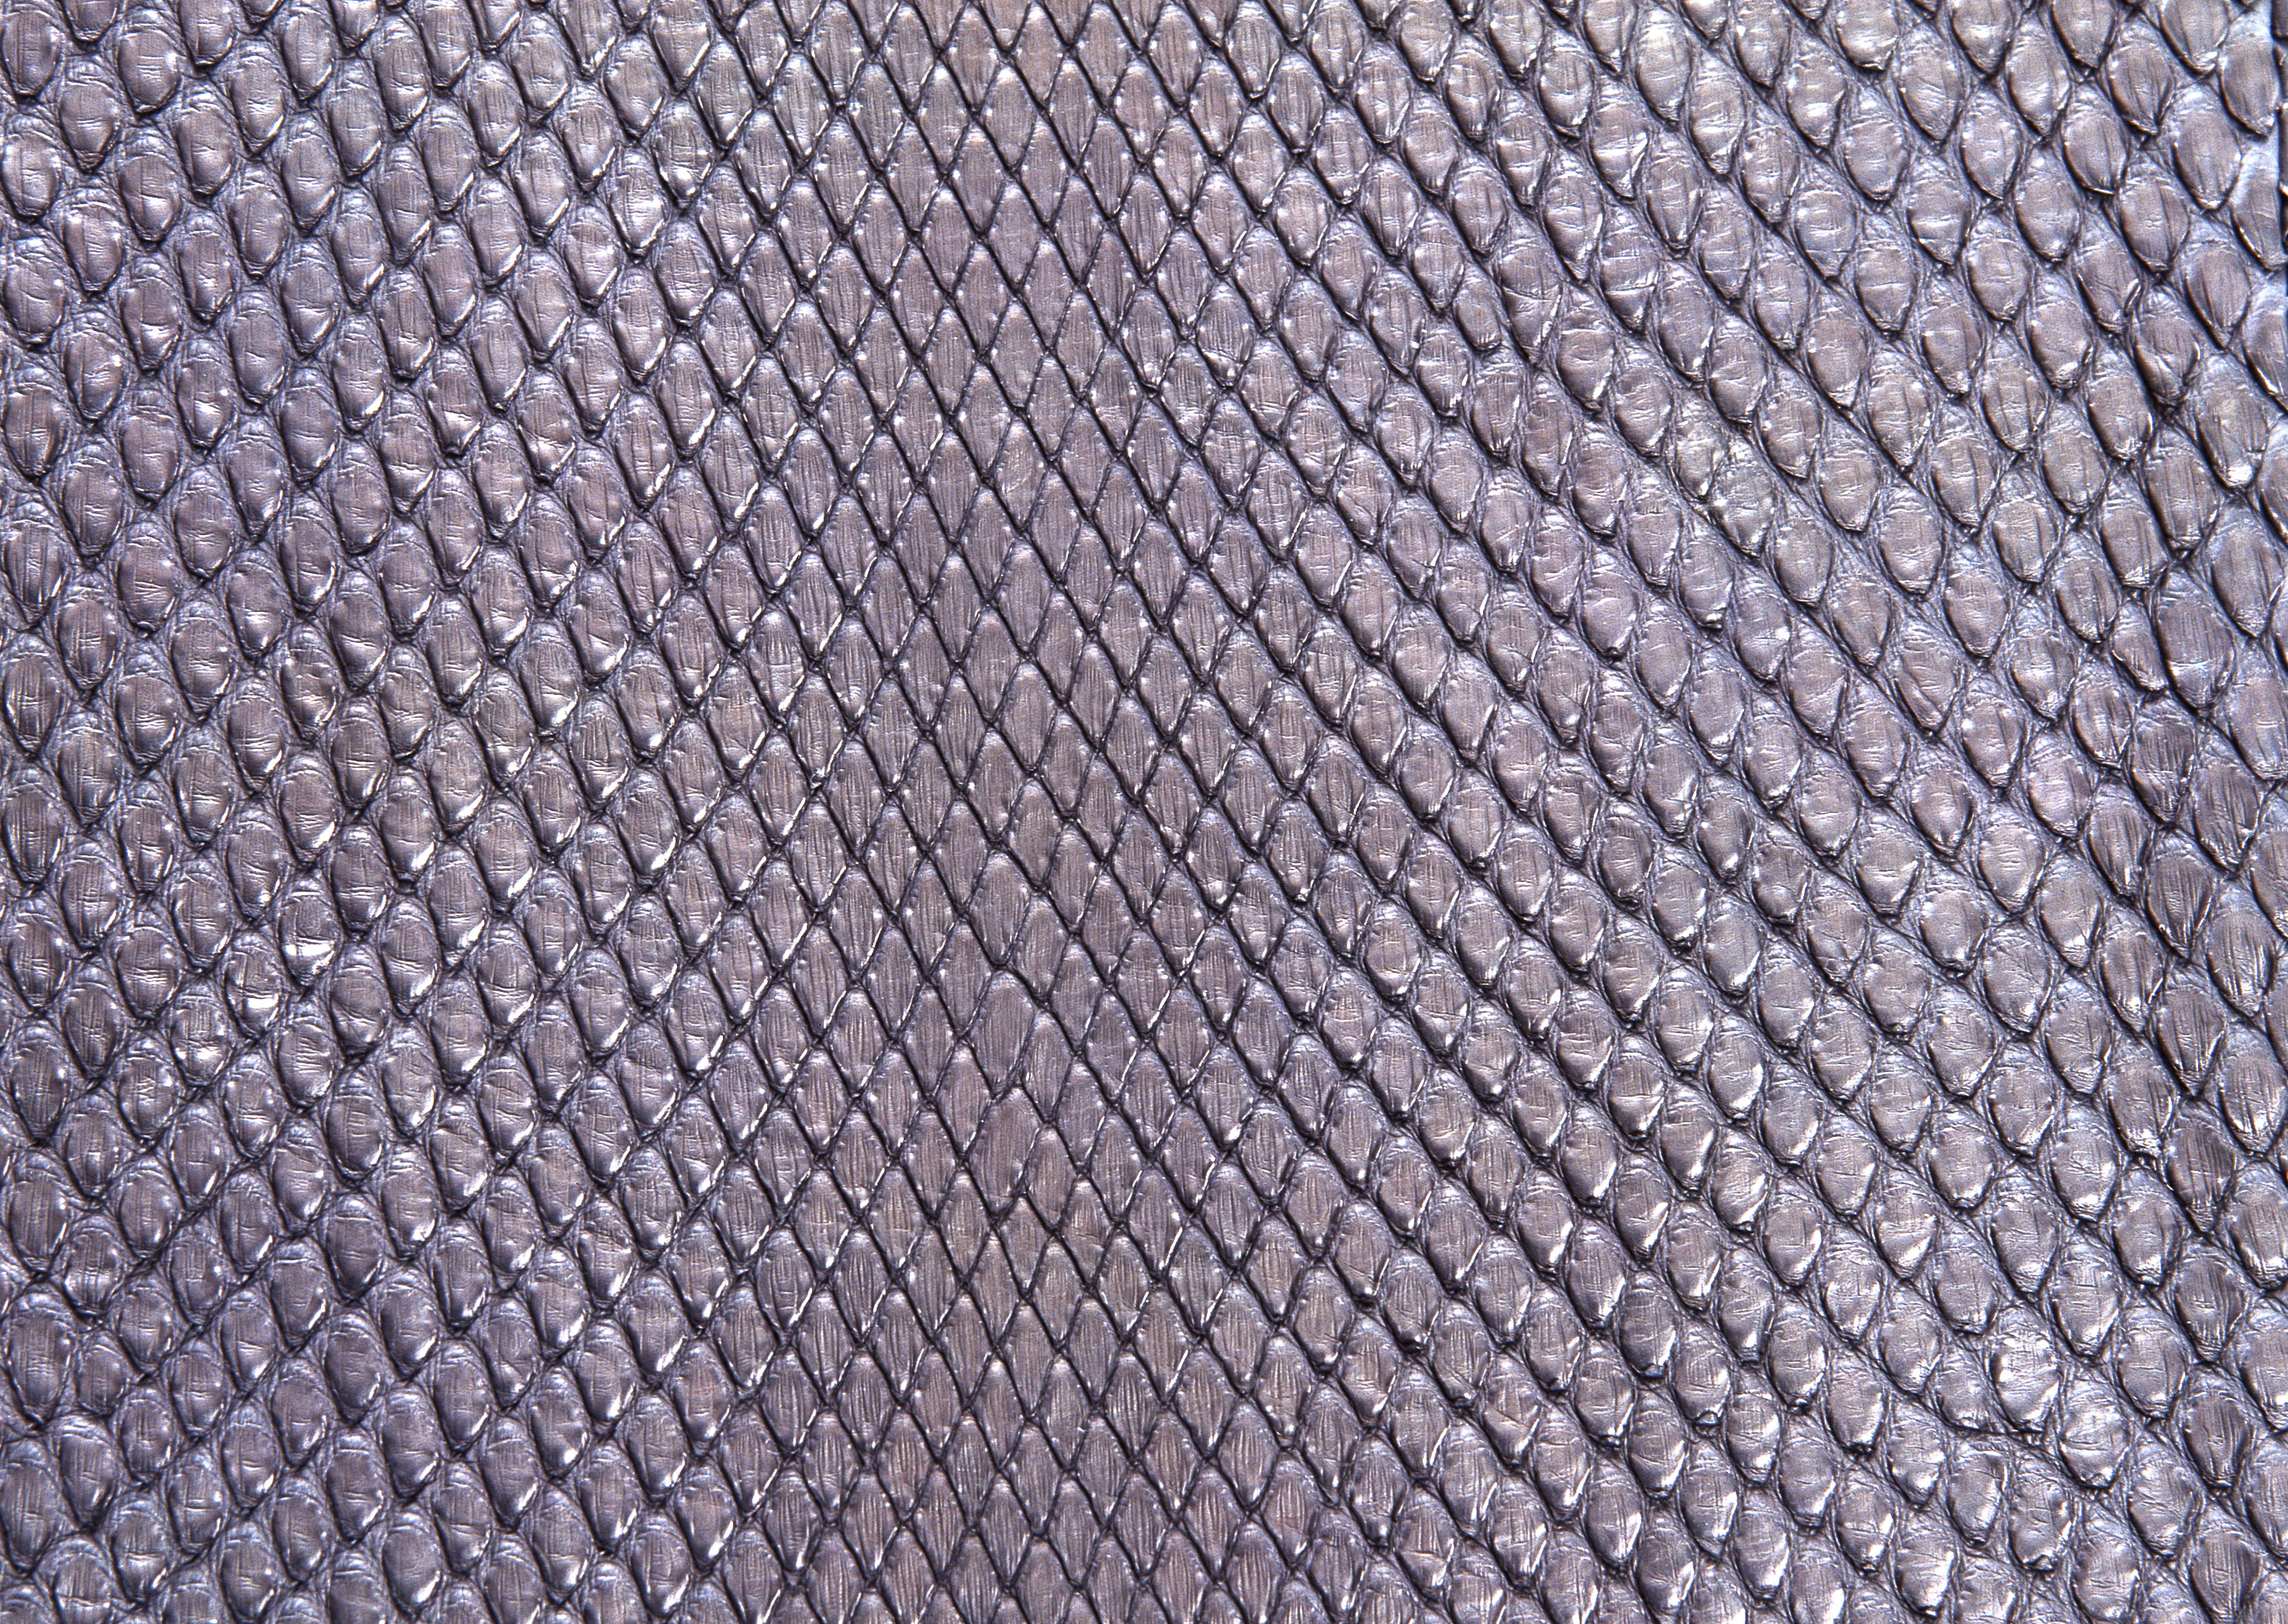 Snake leather texture background image download, snakes Чешуя Текстура